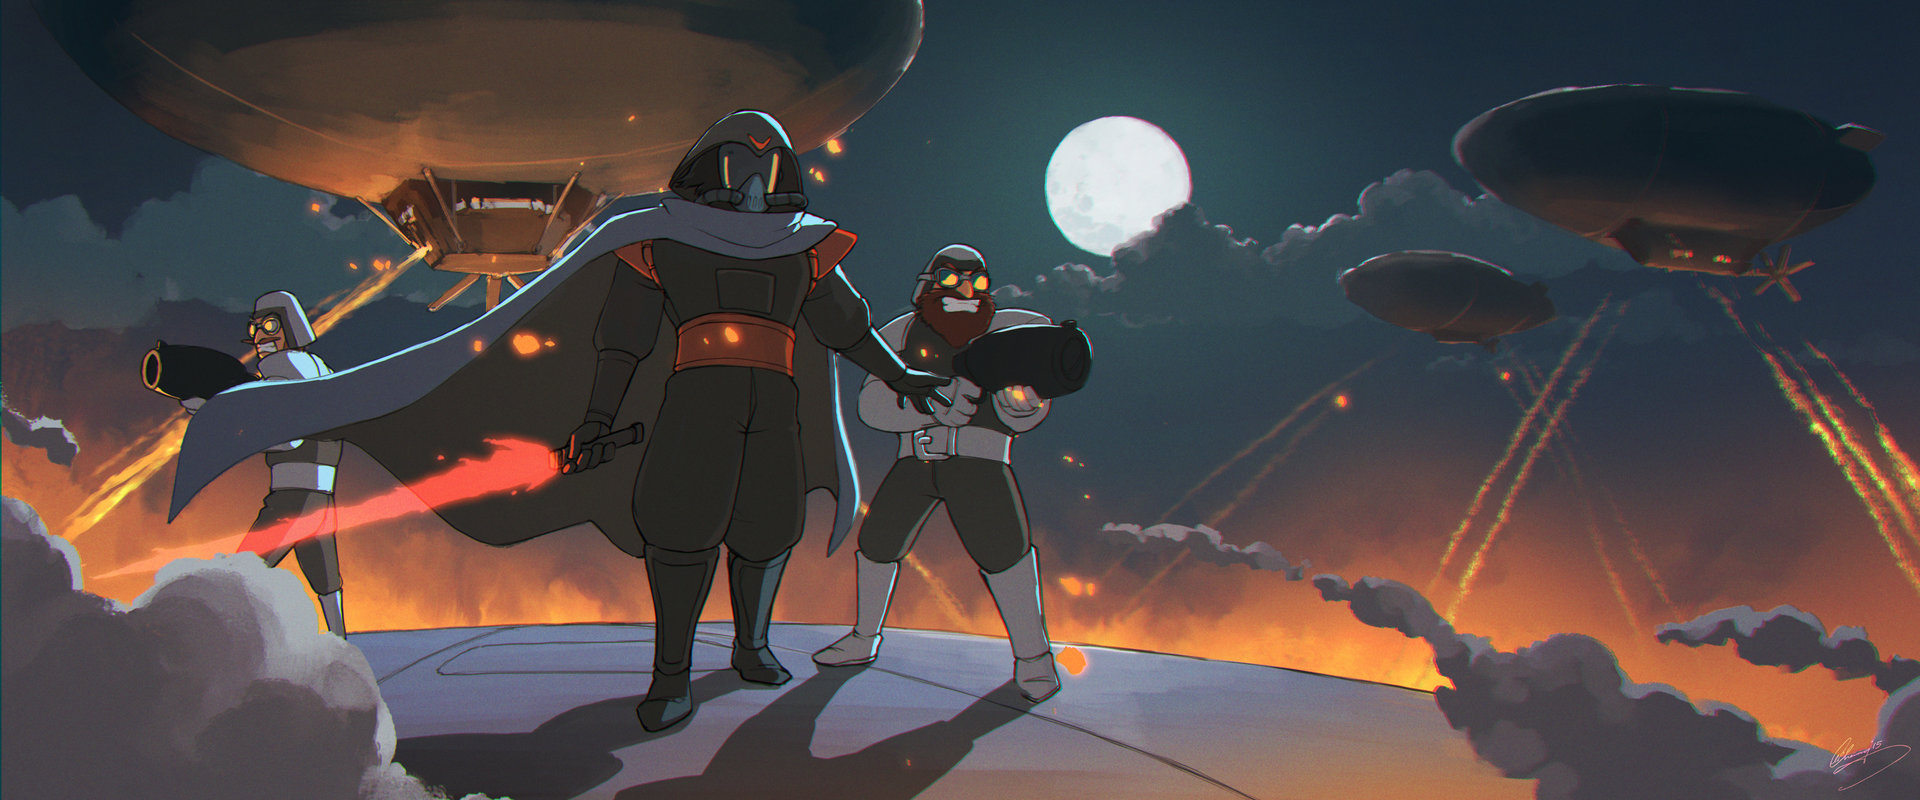 Star Wars Reimagined - Darth Ghibli's Entrance